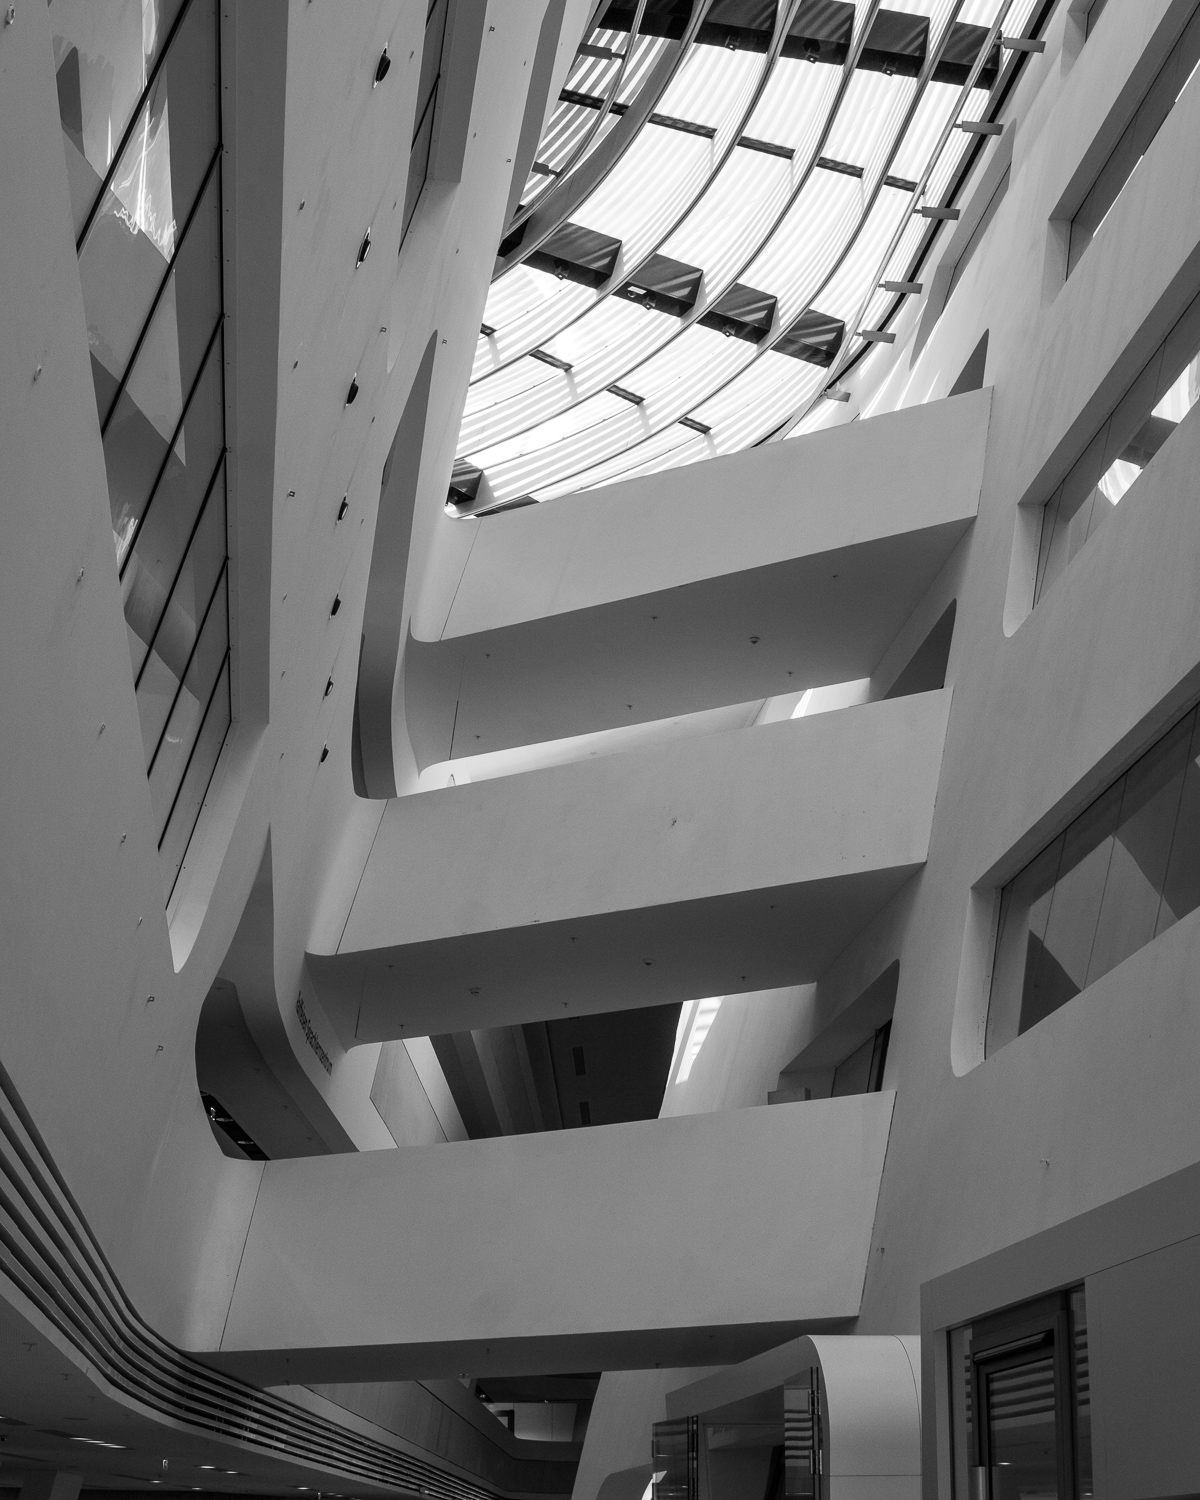 zaha hadid, library, university of vienna, austria